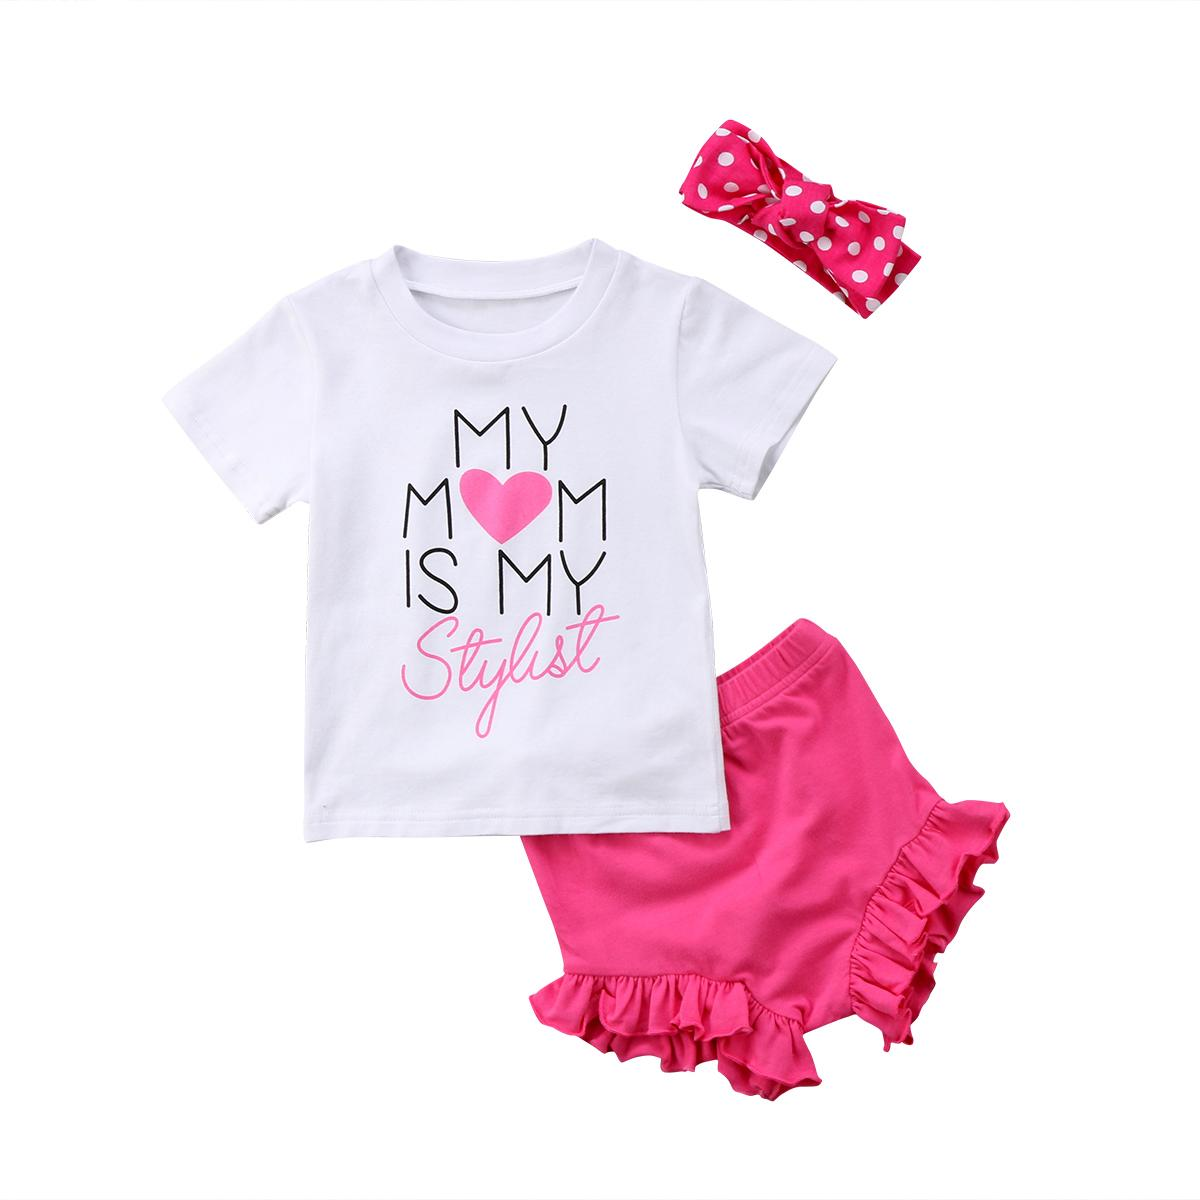 af8263b87 2019 Newborn Infant Baby Girls Clothing Tops T Shirt Shorts Headband ...